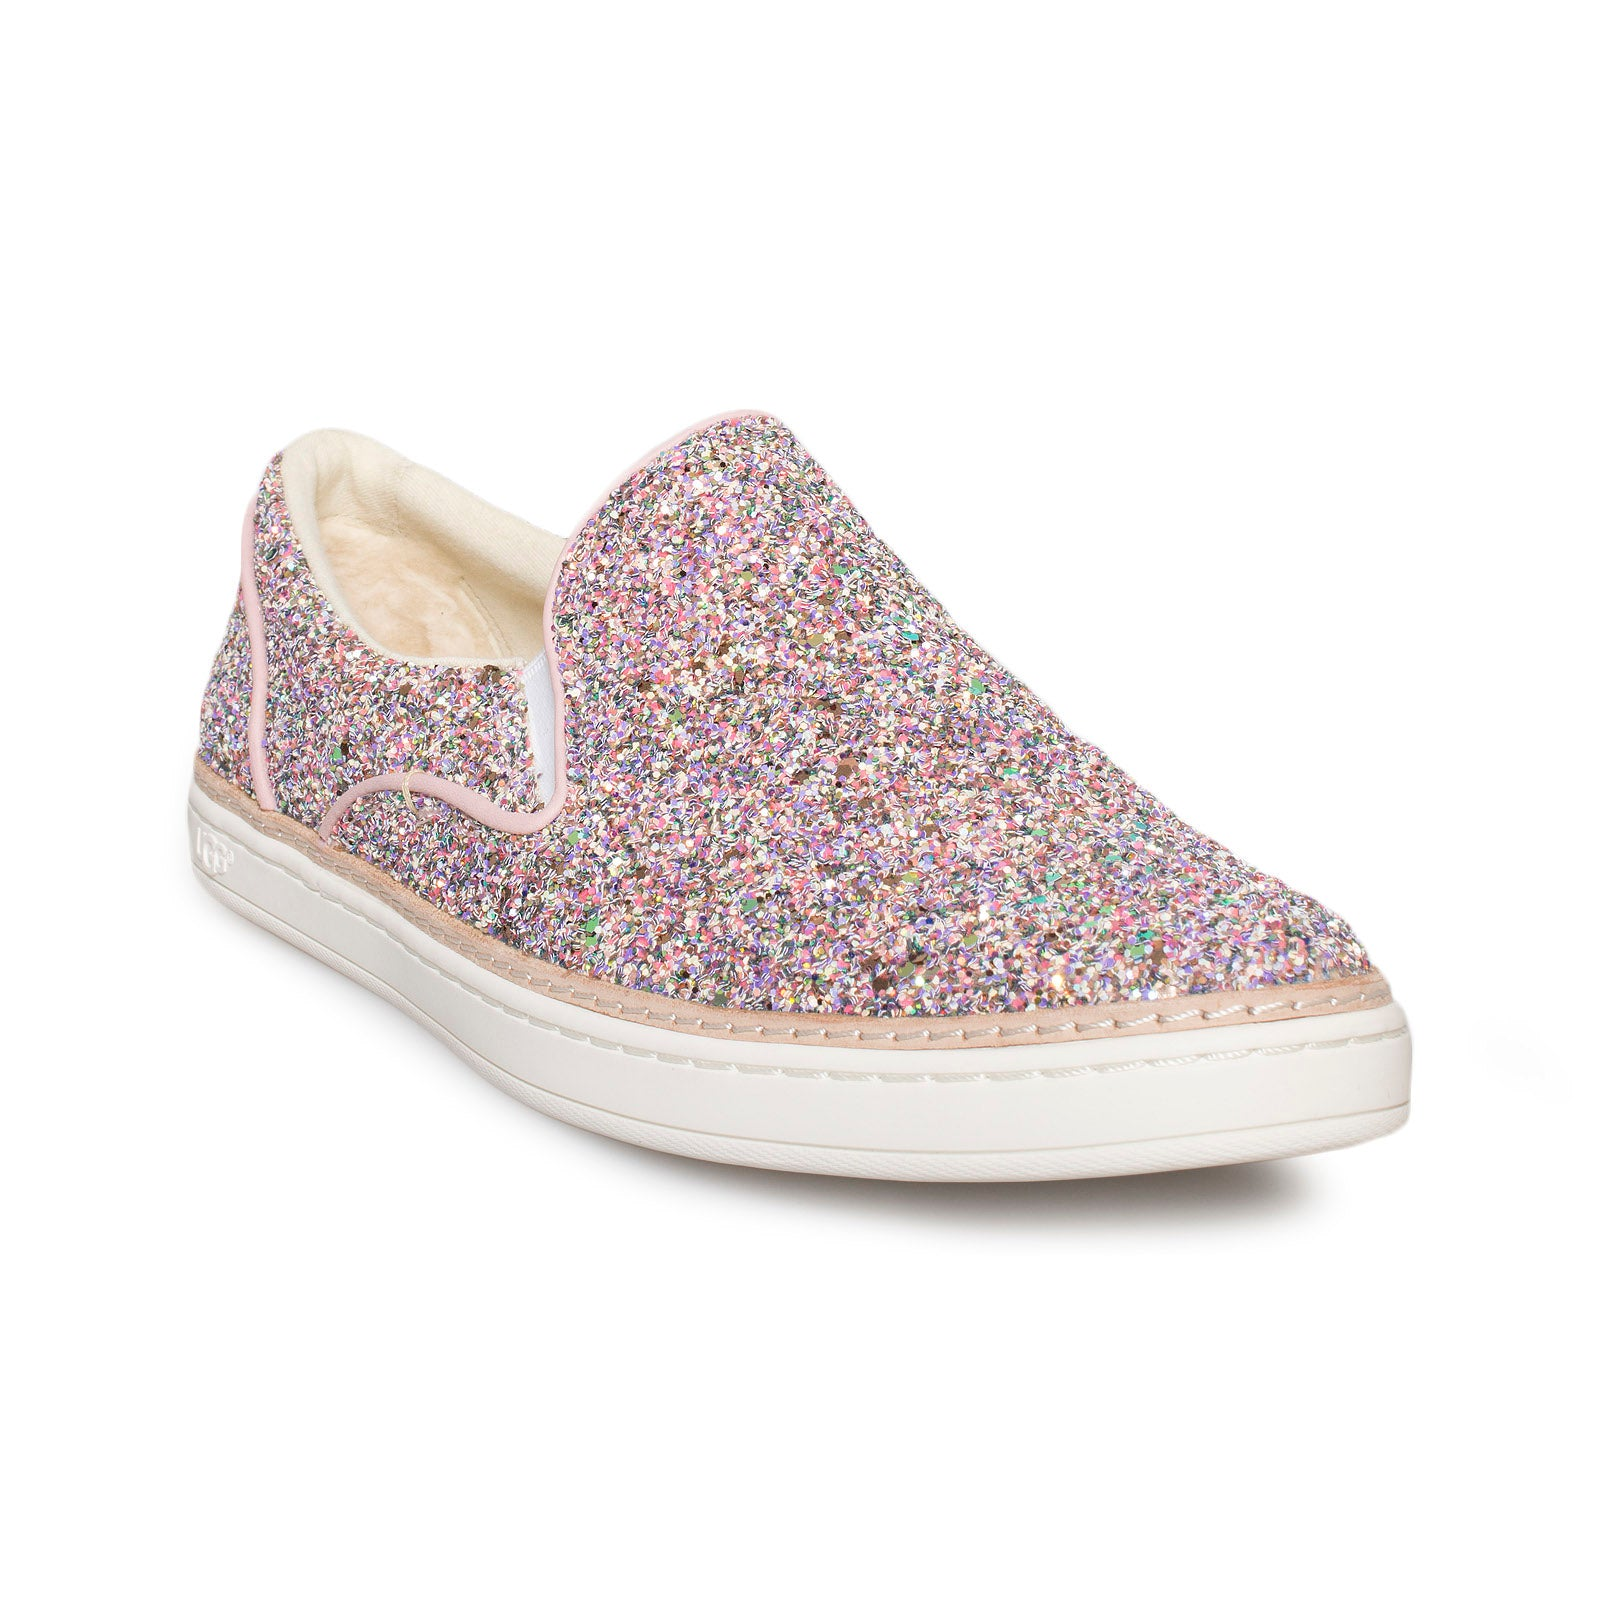 1b5634992b4 UGG Adley Chunky Glitter Confetti Shoes